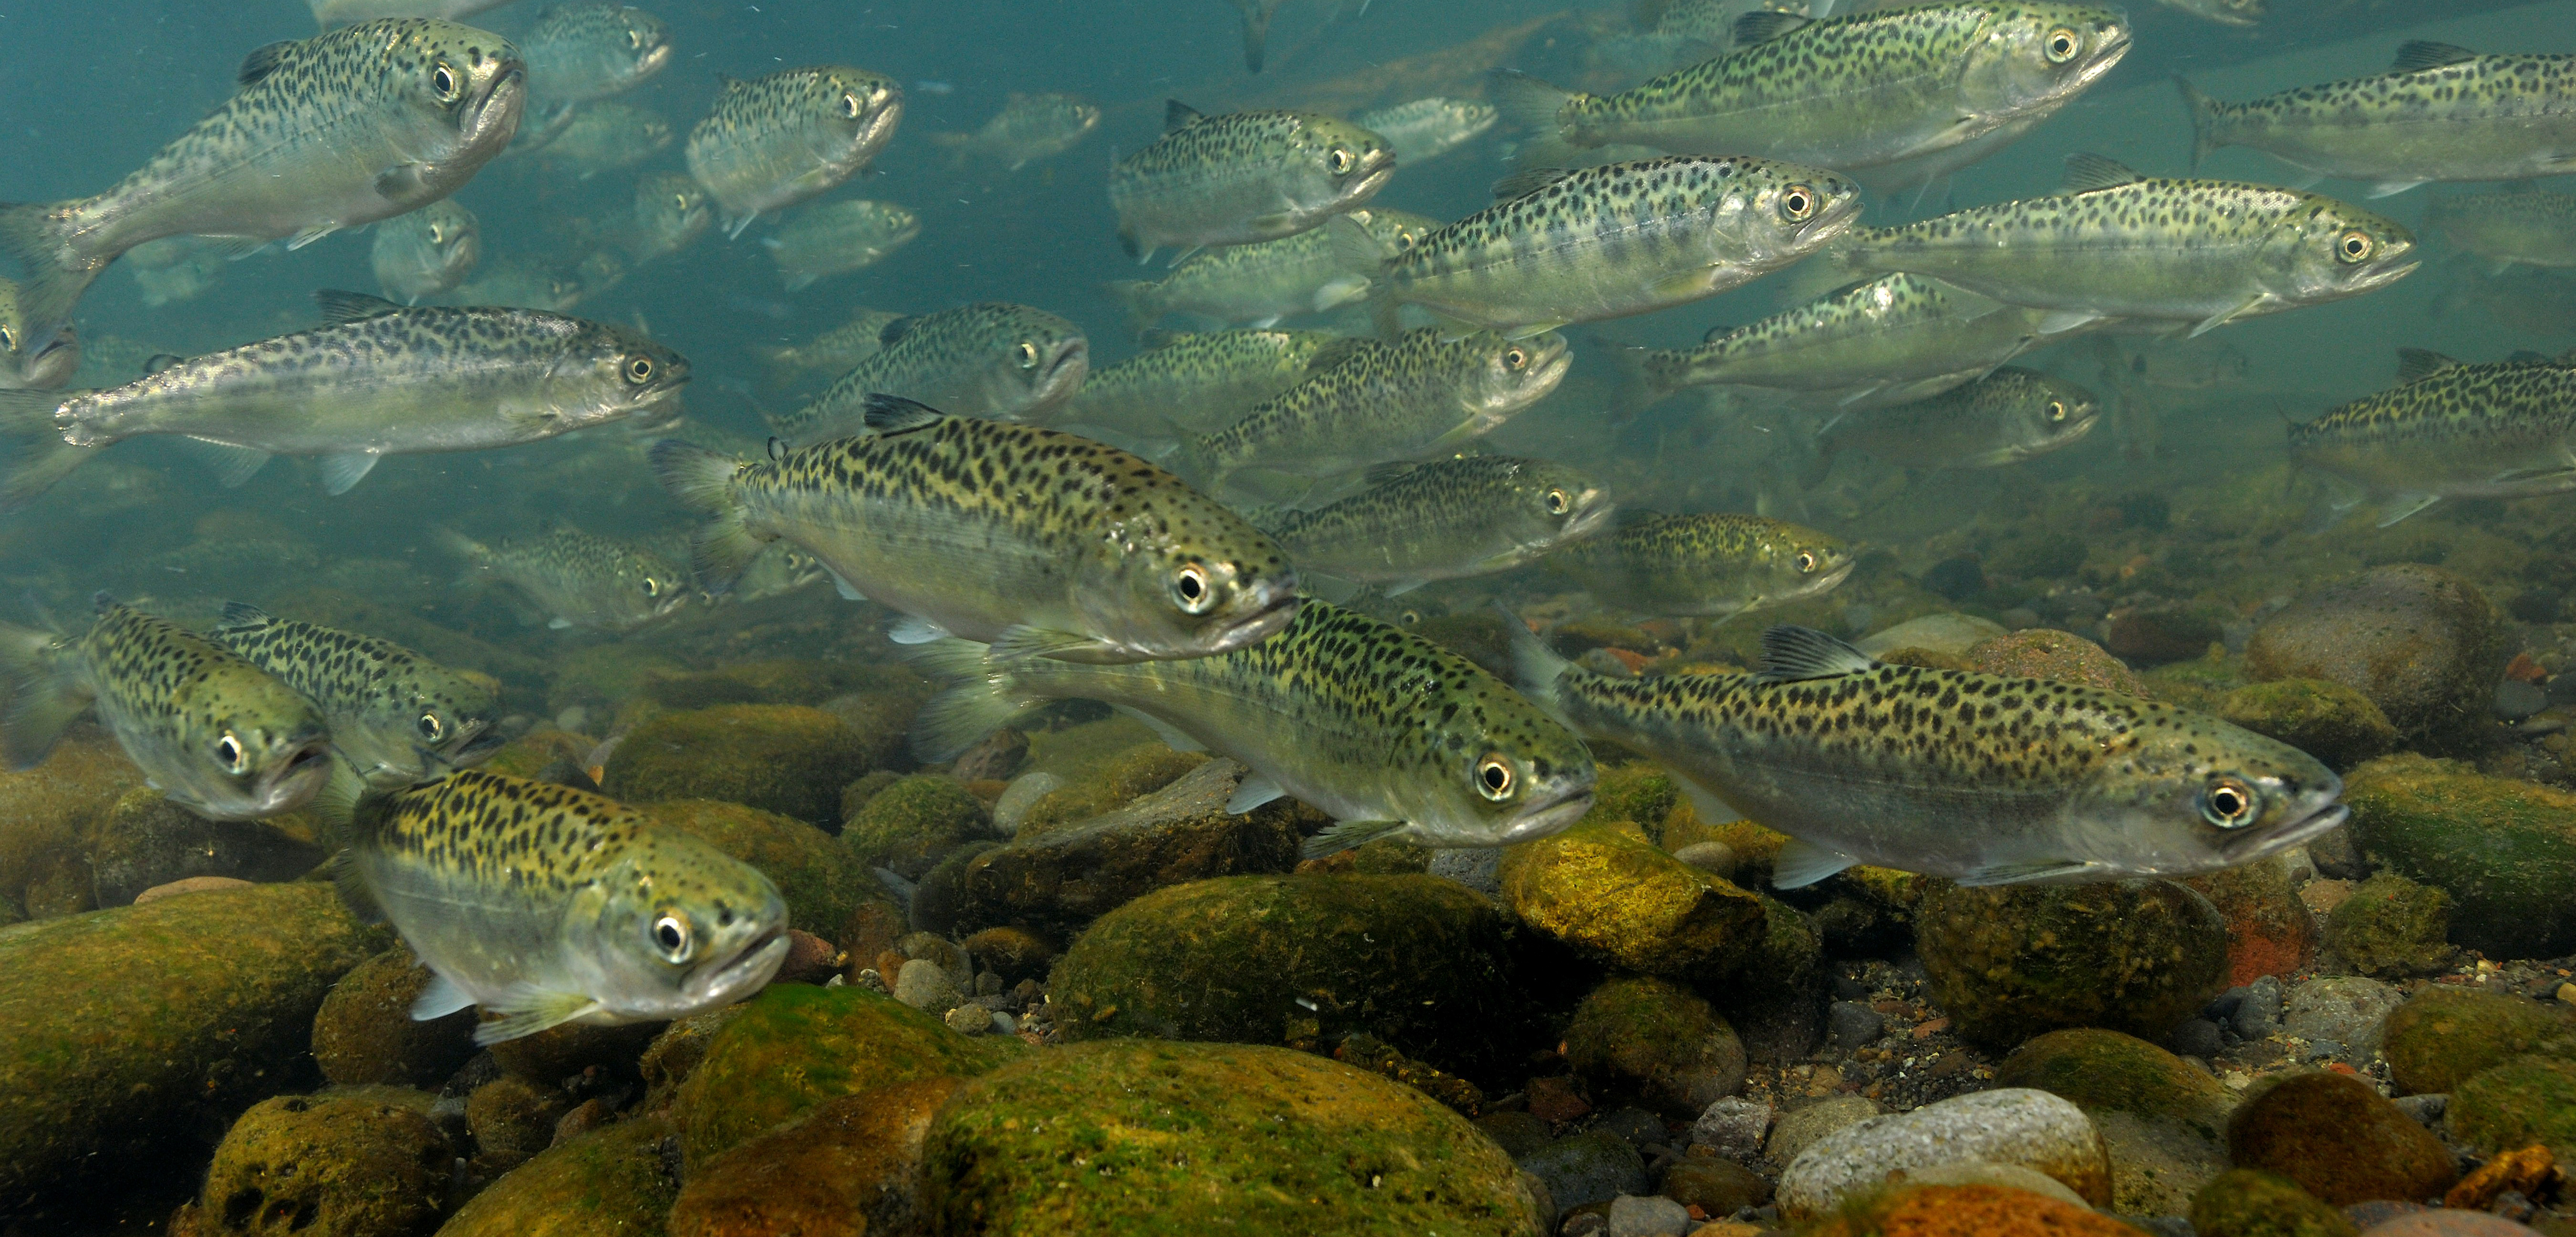 Young chinook salmon, with their highly active lifestyles, seem to be more exposed to contaminants than less active sculpin. Photo by Mark Conlin/SuperStock/Corbis